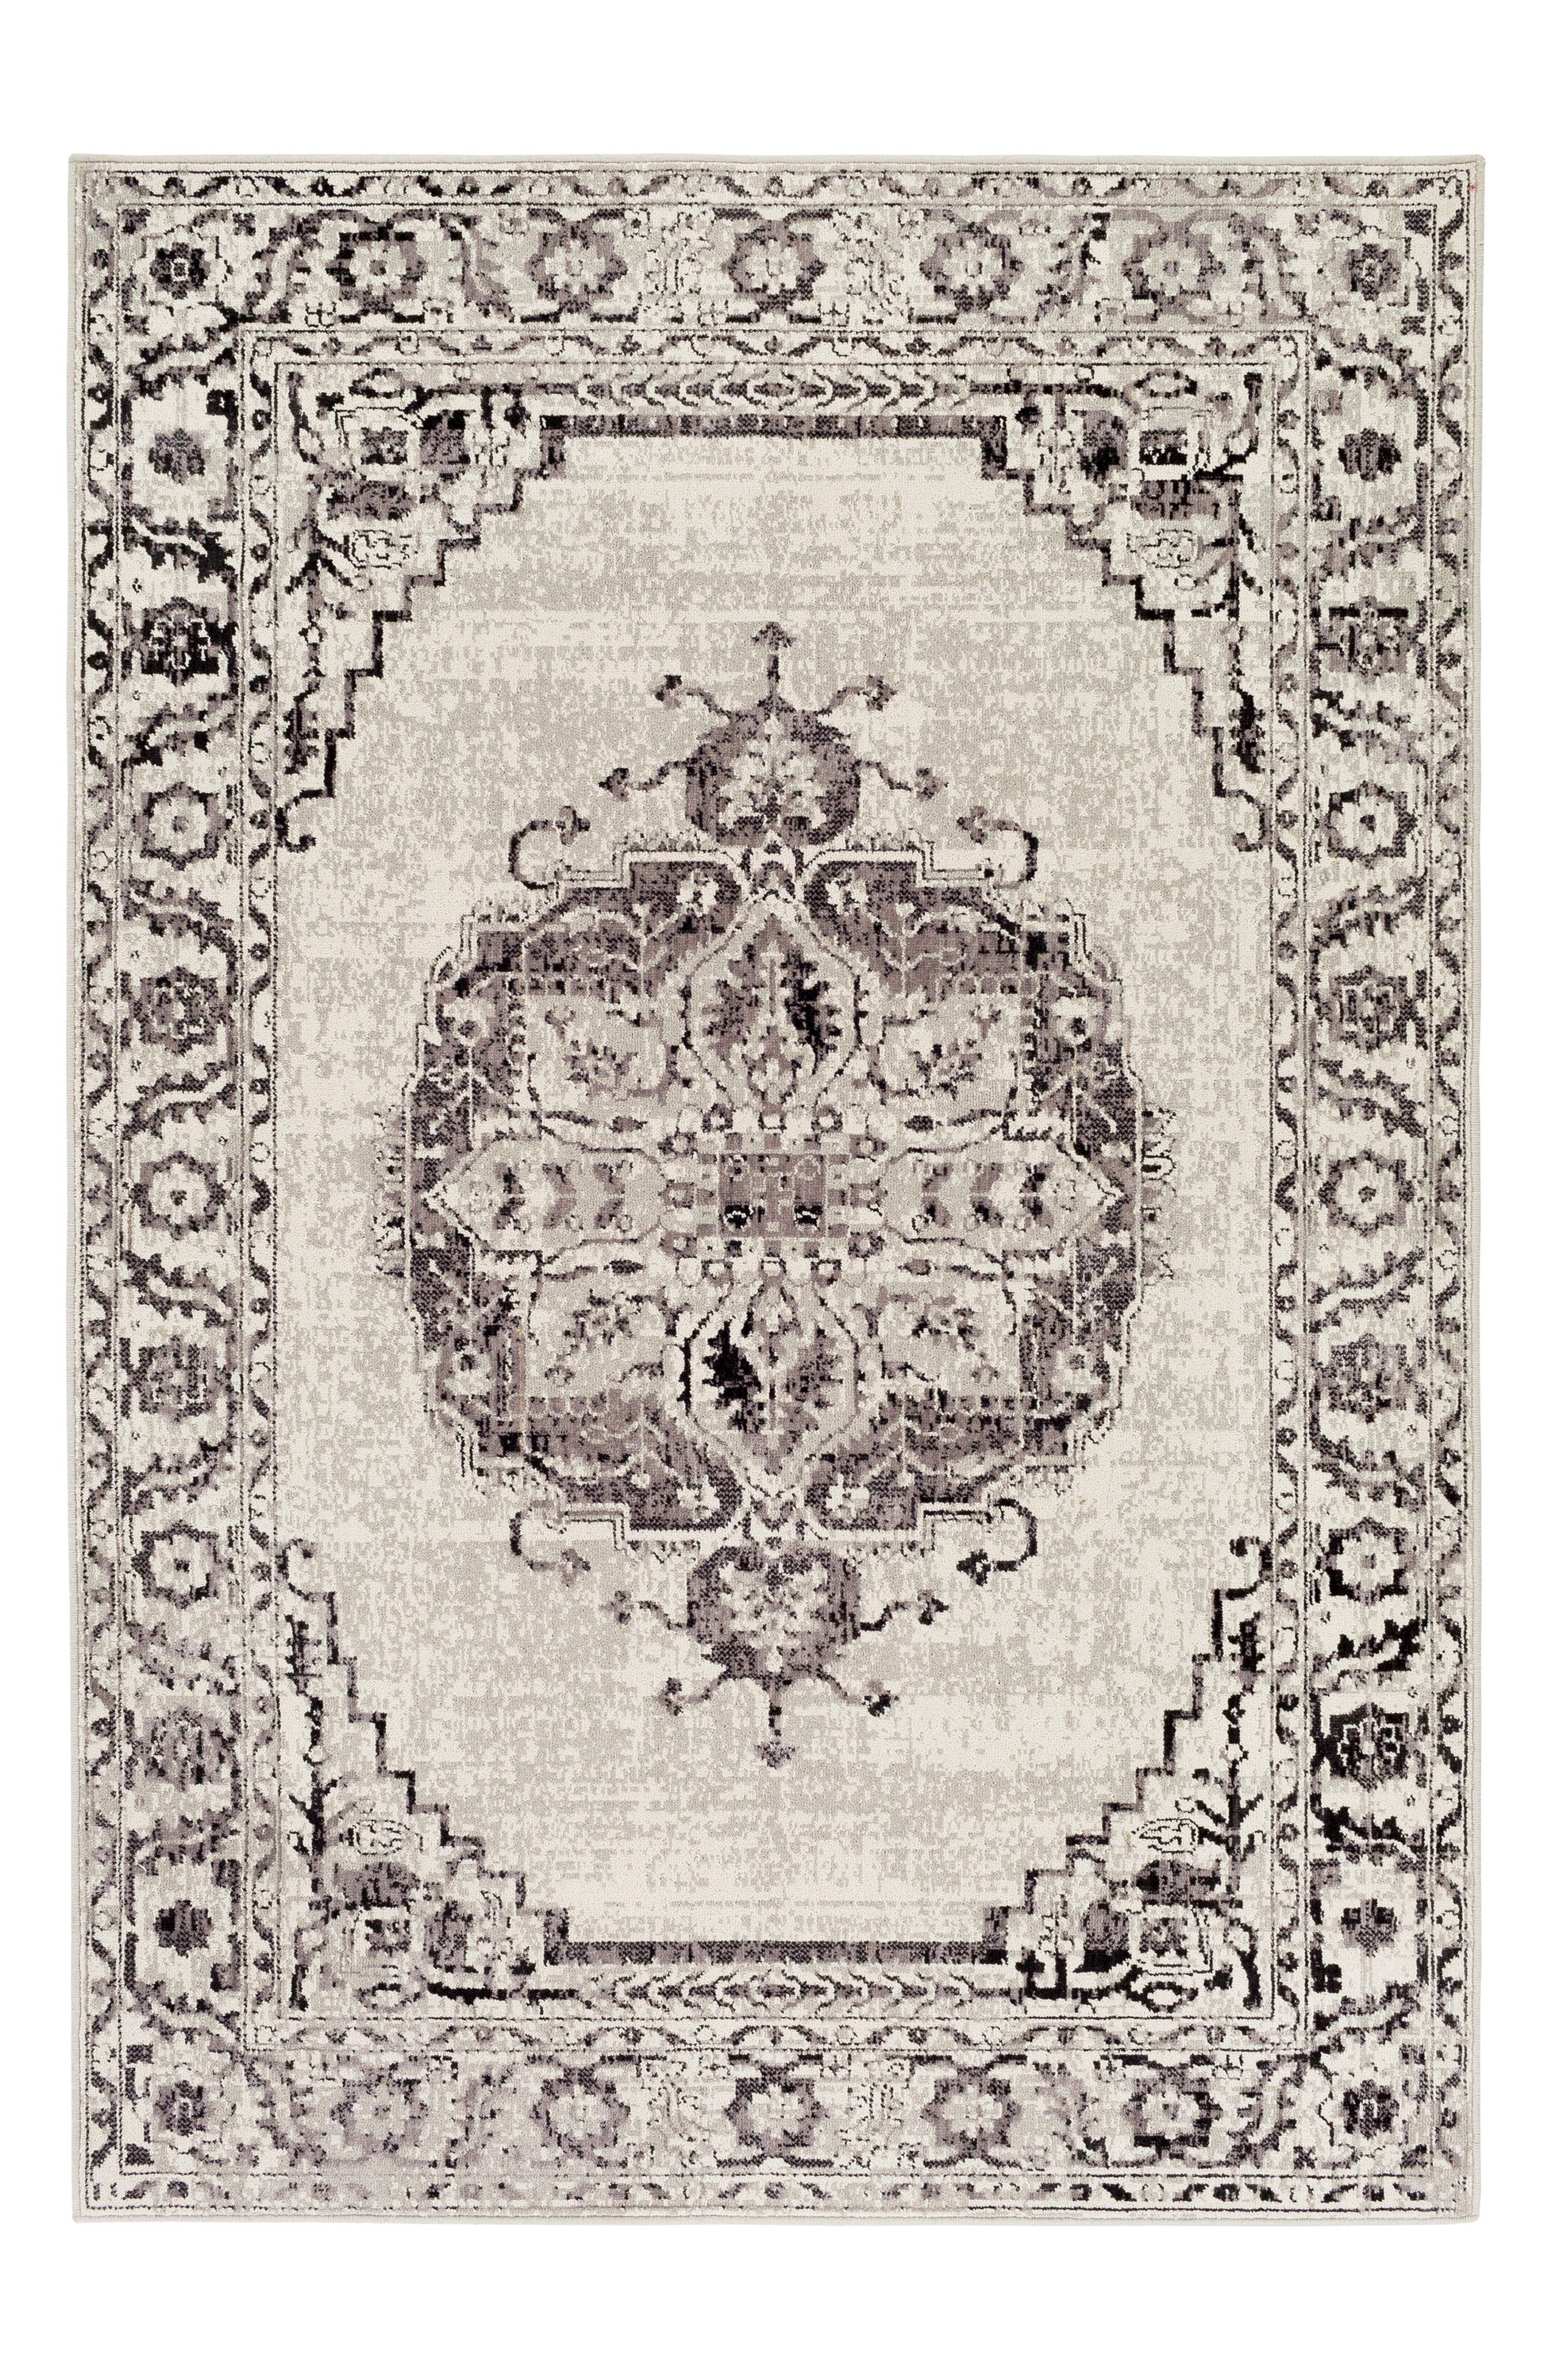 Alternate Image 1 Selected - Surya Home Classic Cove Rug